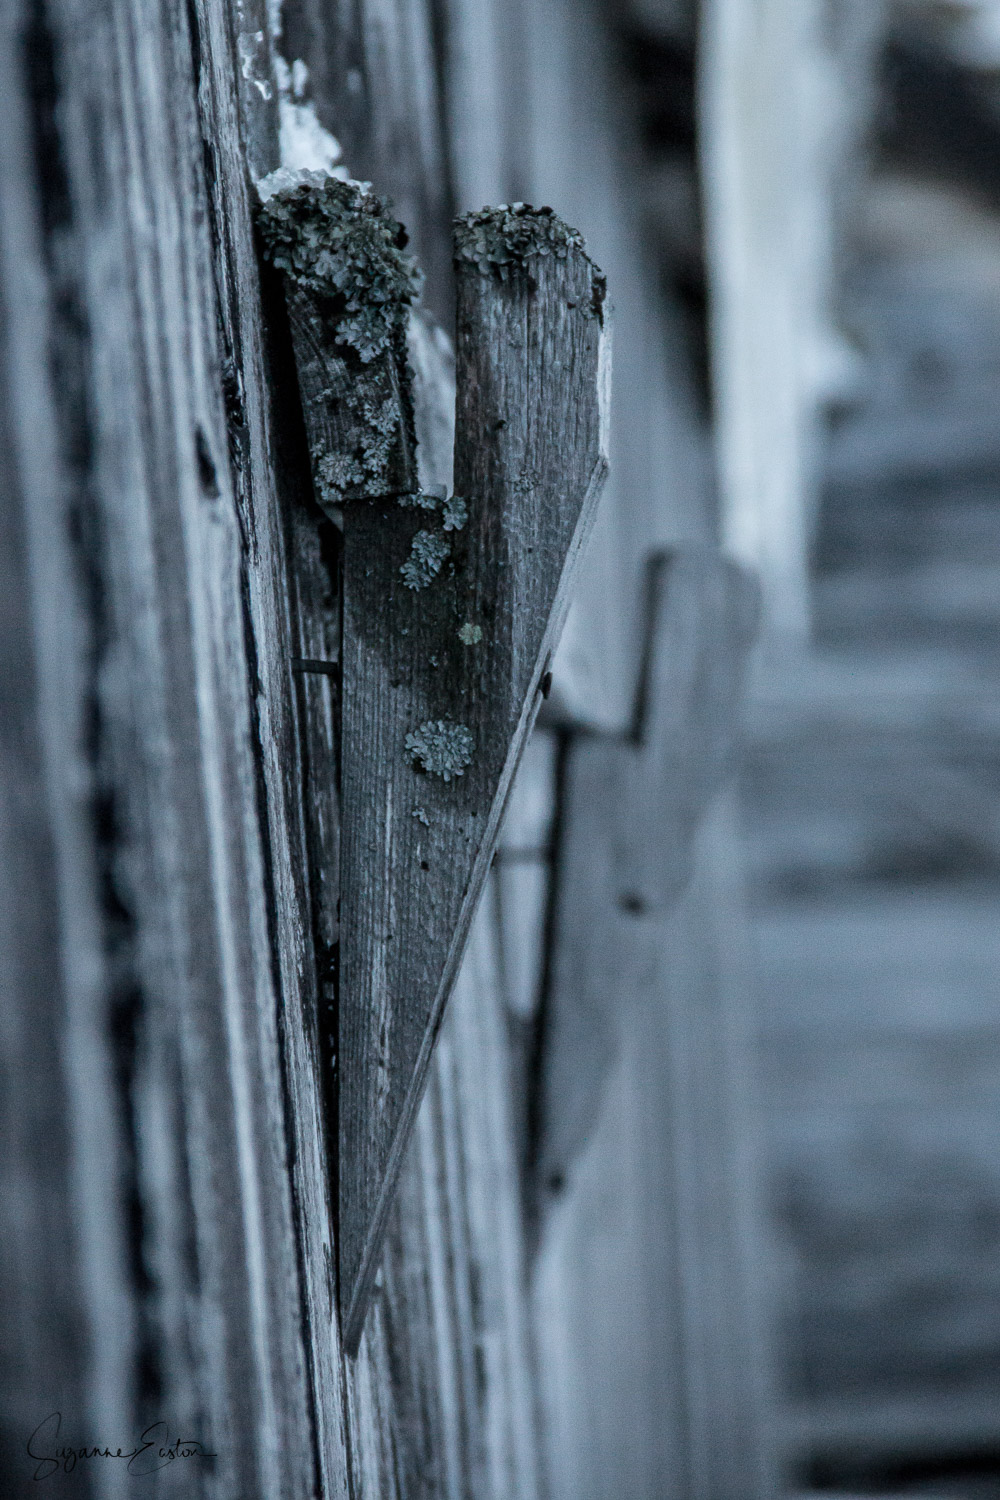 Wooden latch